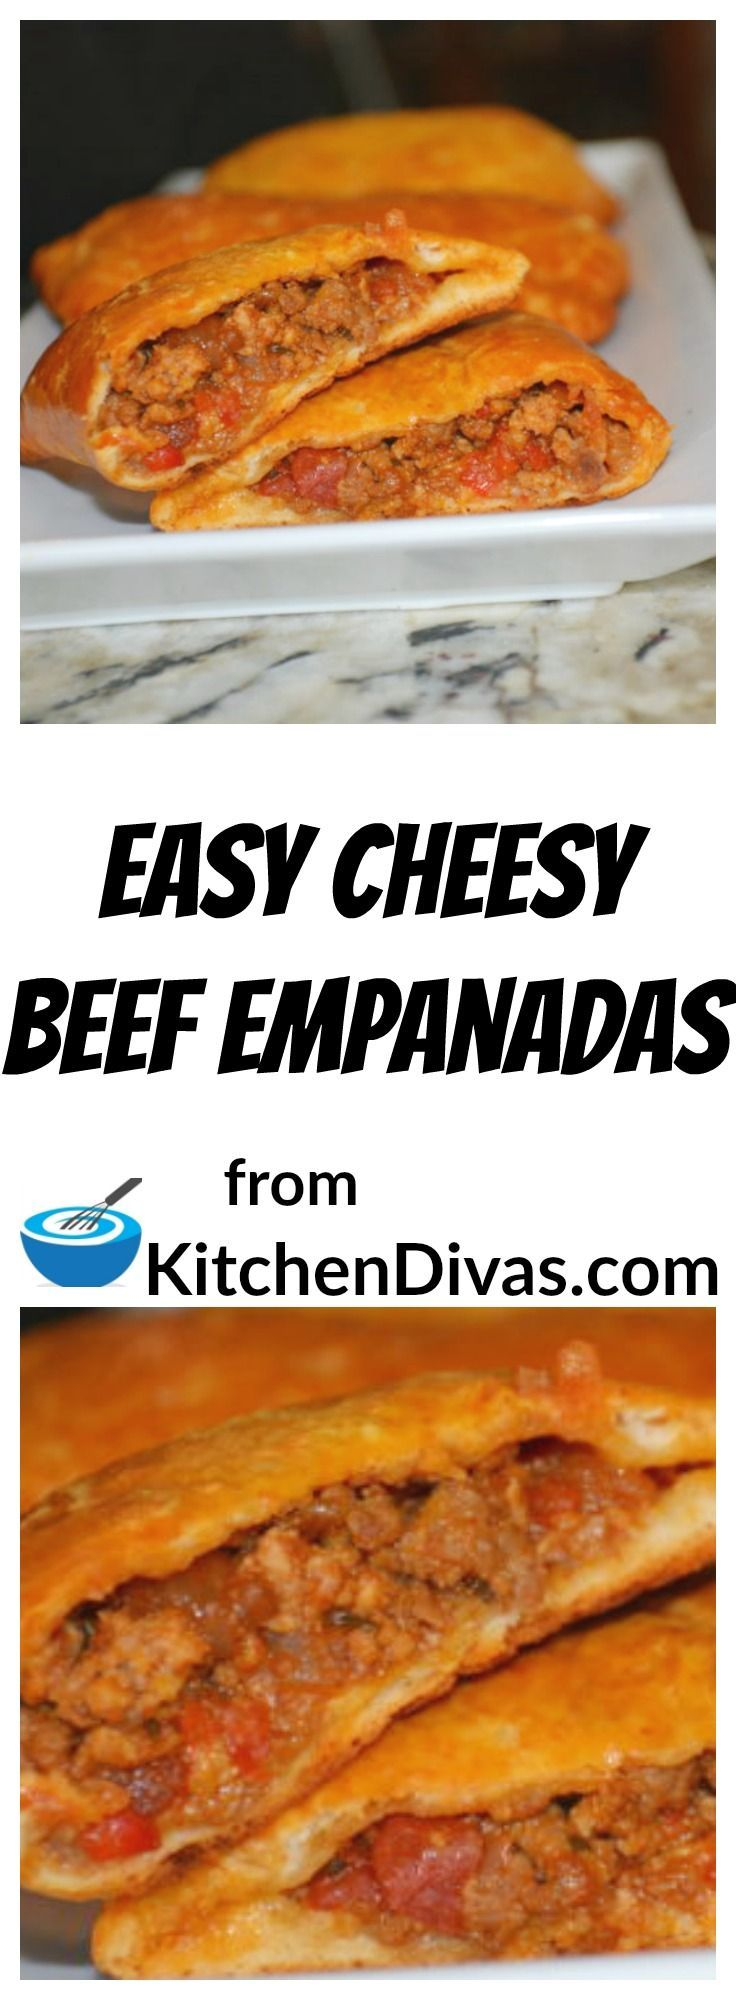 Easy Cheesy Beef Empanadas are delicious!  Refrigerated biscuits make things so much easier!  #empanada #recipe